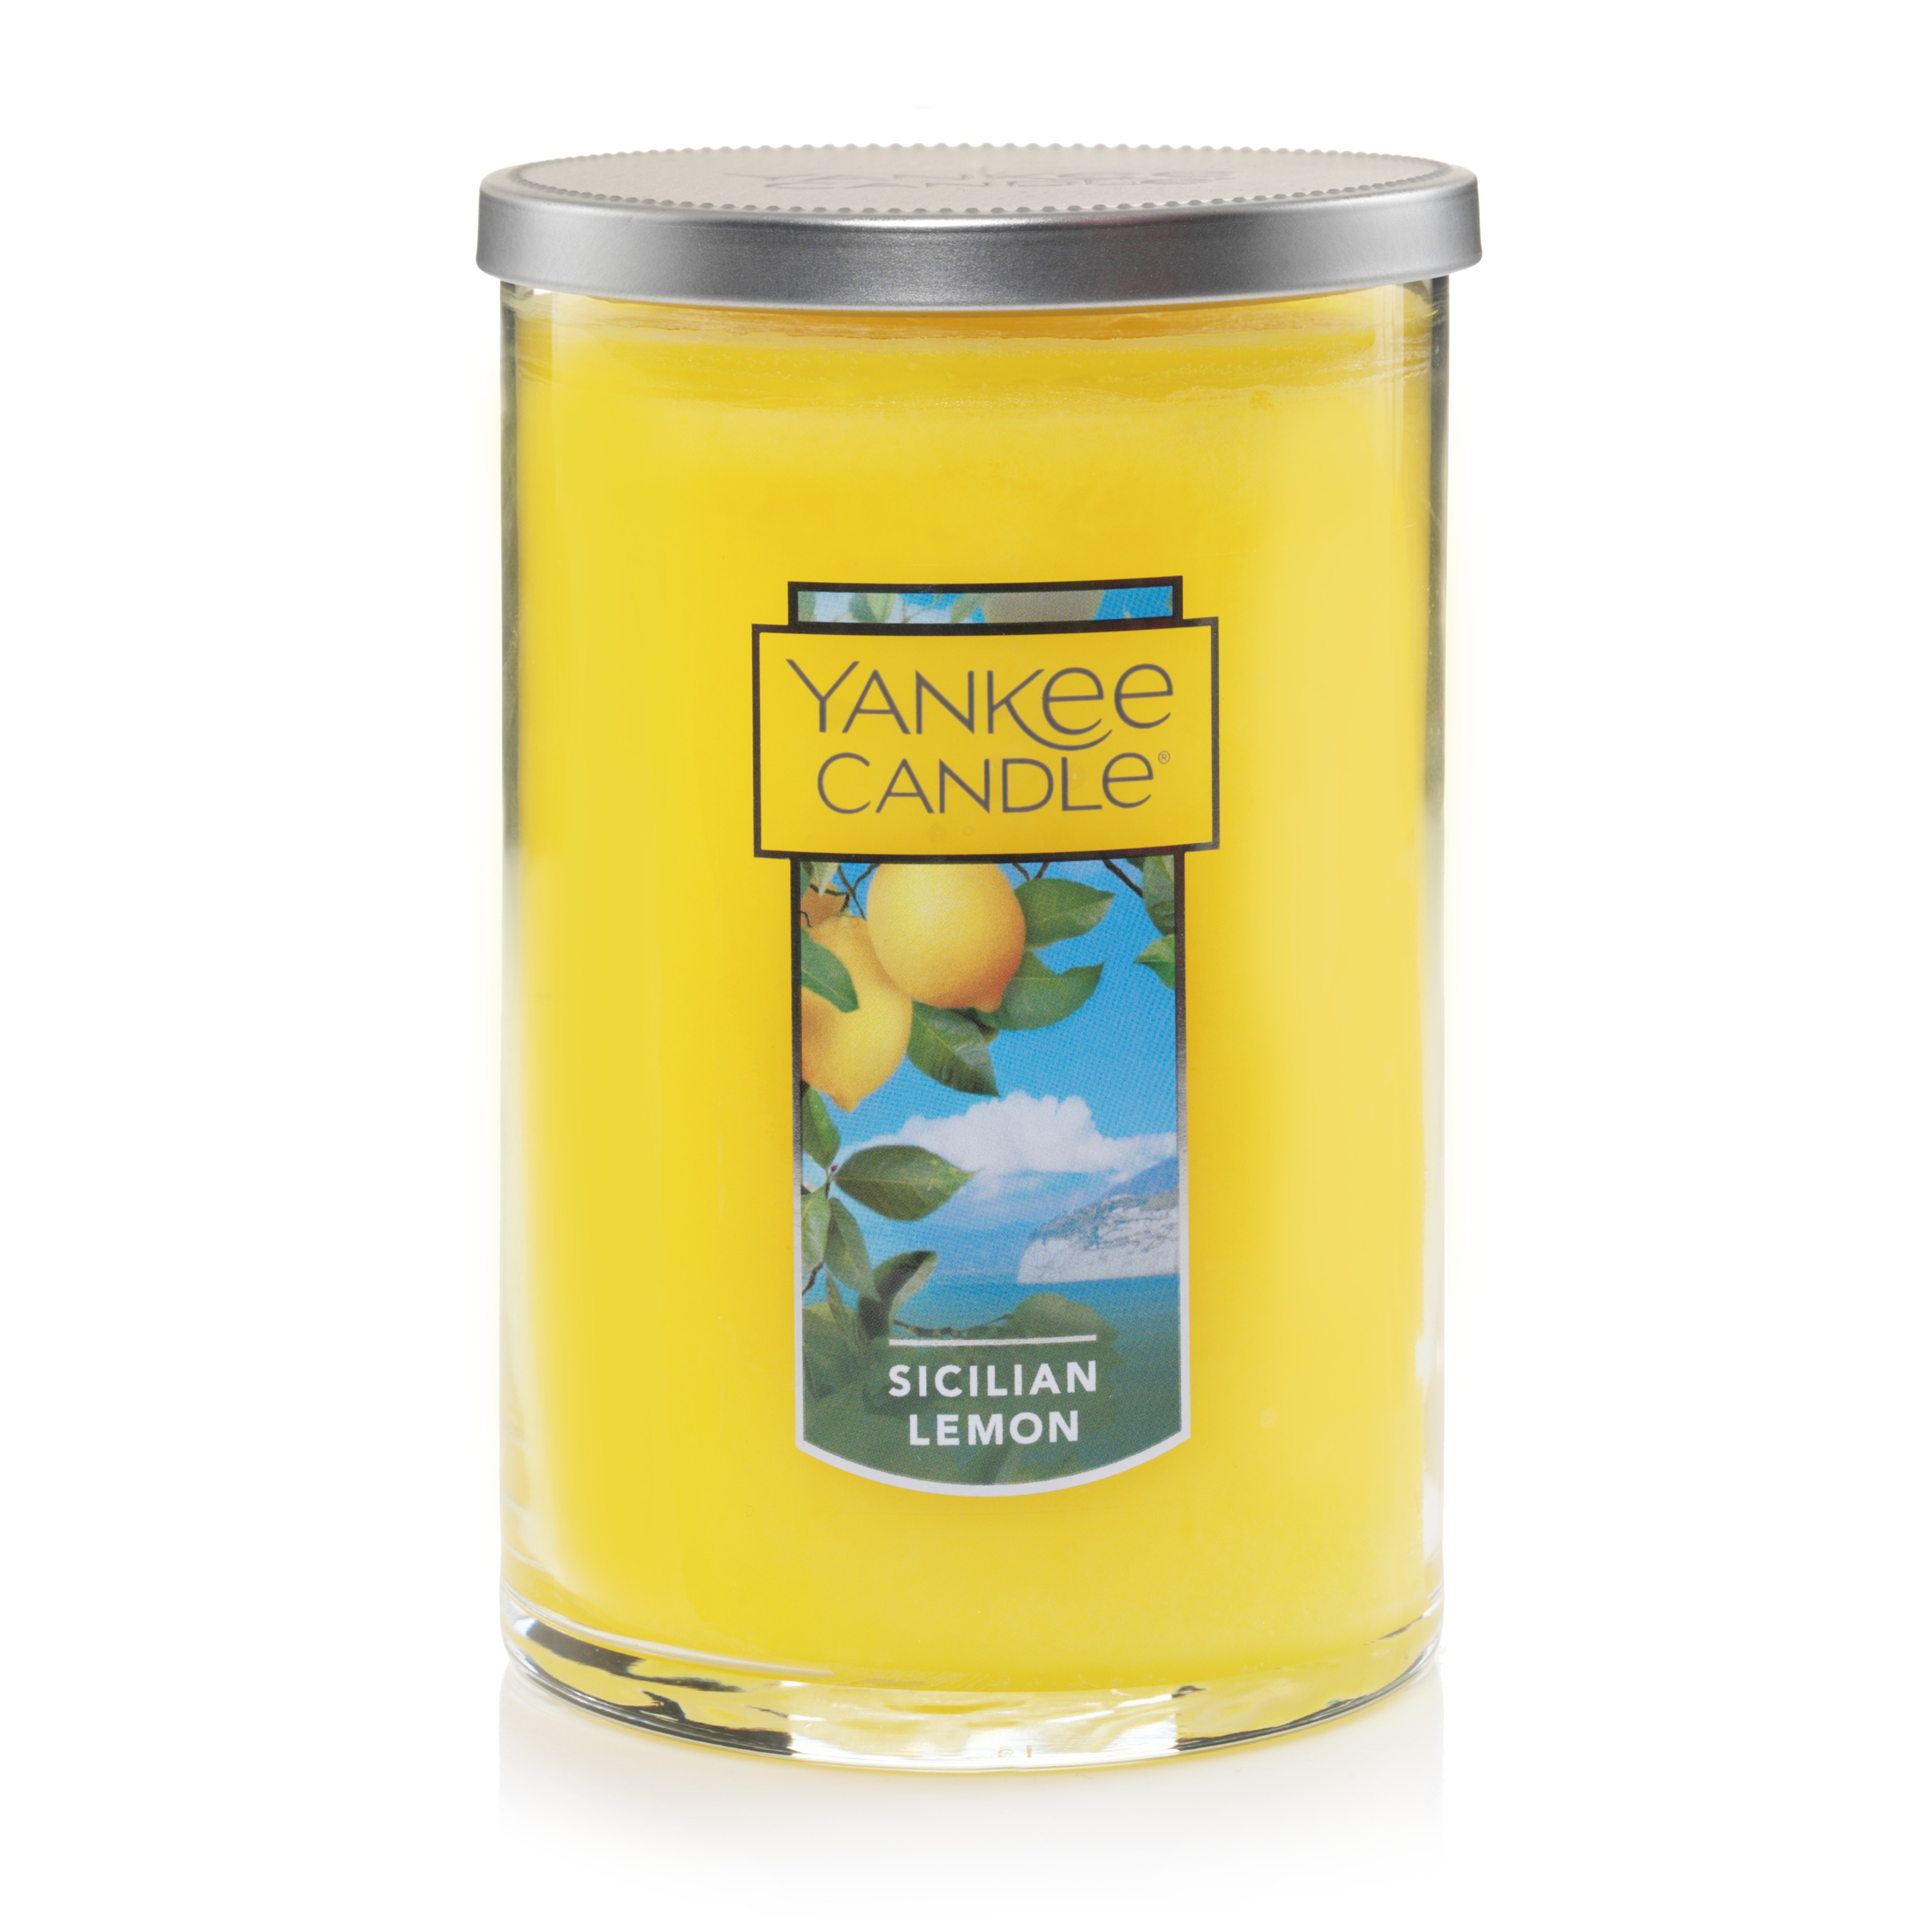 Yankee Candle Large 2-Wick Tumbler Scented Candle, Sicilian Lemon by Yankee Candle